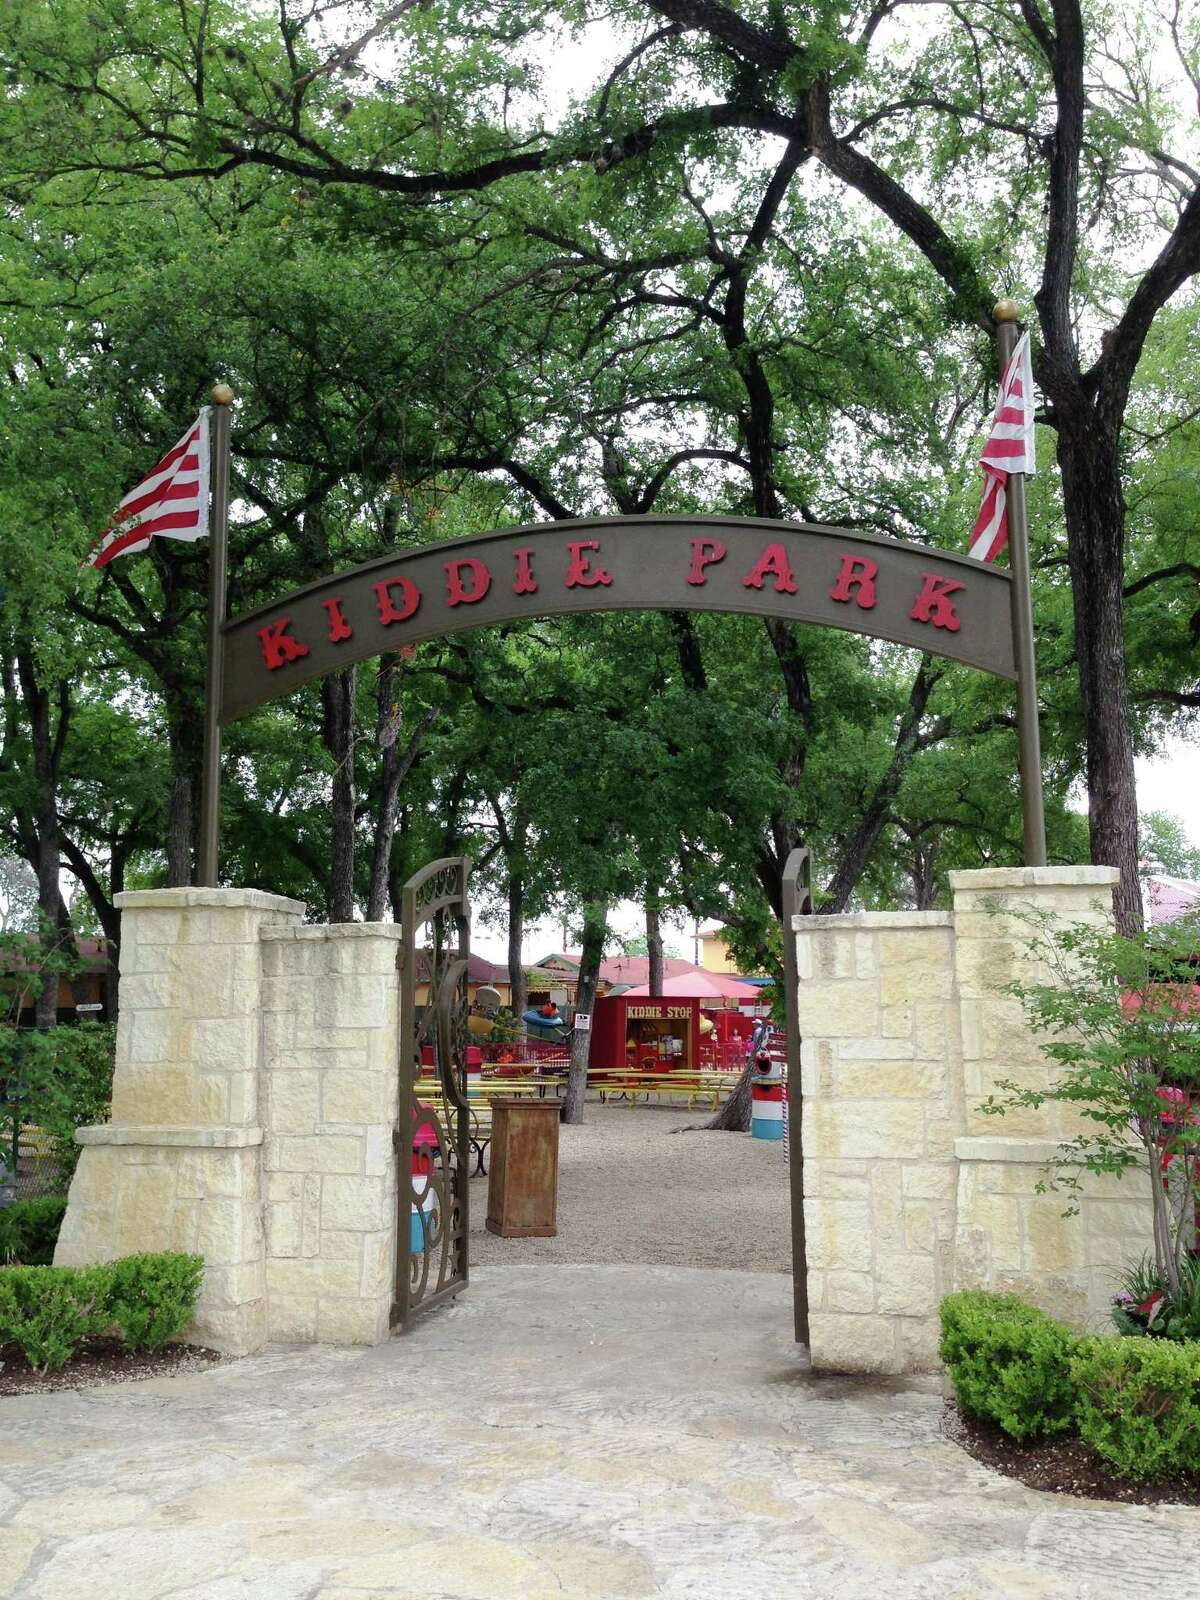 Will Kiddie Park guests be required to pay San Antonio Zoo admission?  No. Kiddie Park visitors will not have to enter the zoo to get to the park, so zoo admission is not required.